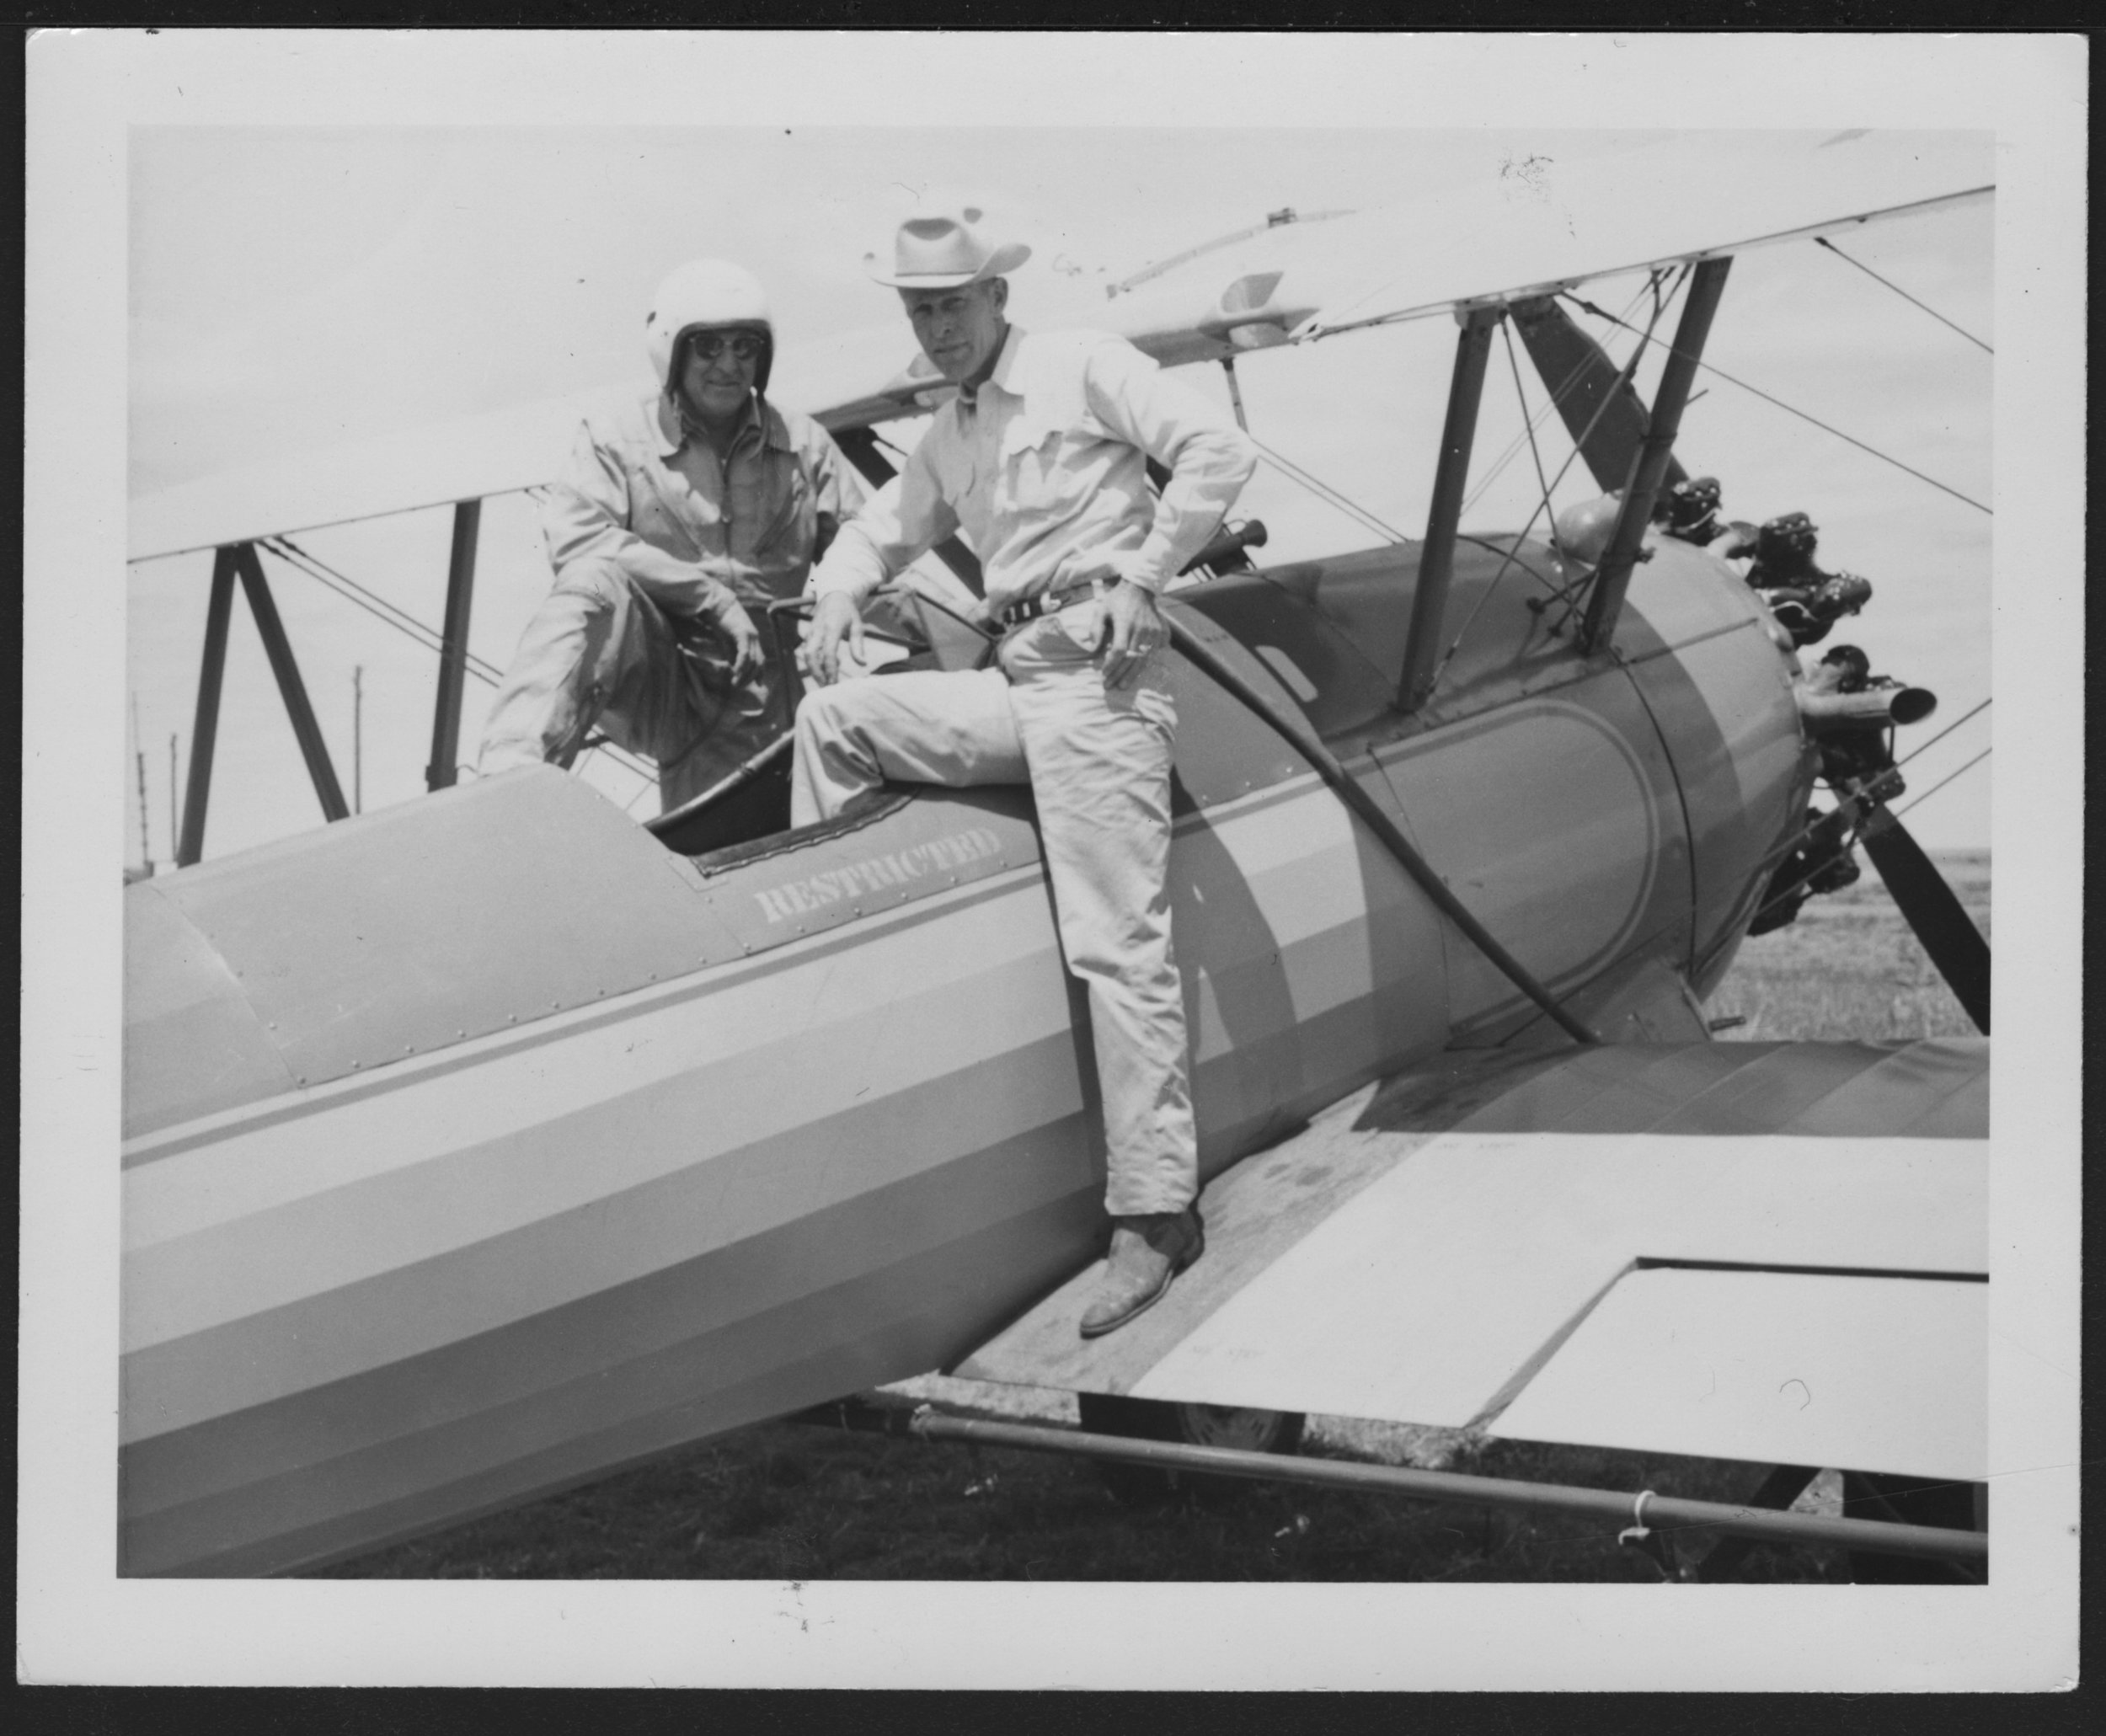 Grassland Ag pilots and weed scientists often worked together to address agricultural perils involved with pesticides and mitigate risks. In this late 1950s photograph, Dodge City spray pilot Roy Mahon can be seen in discussion with local weed supervisor Ralph Strum, who stands on the plane's wing. Courtesy of the Kansas State Historical Society.